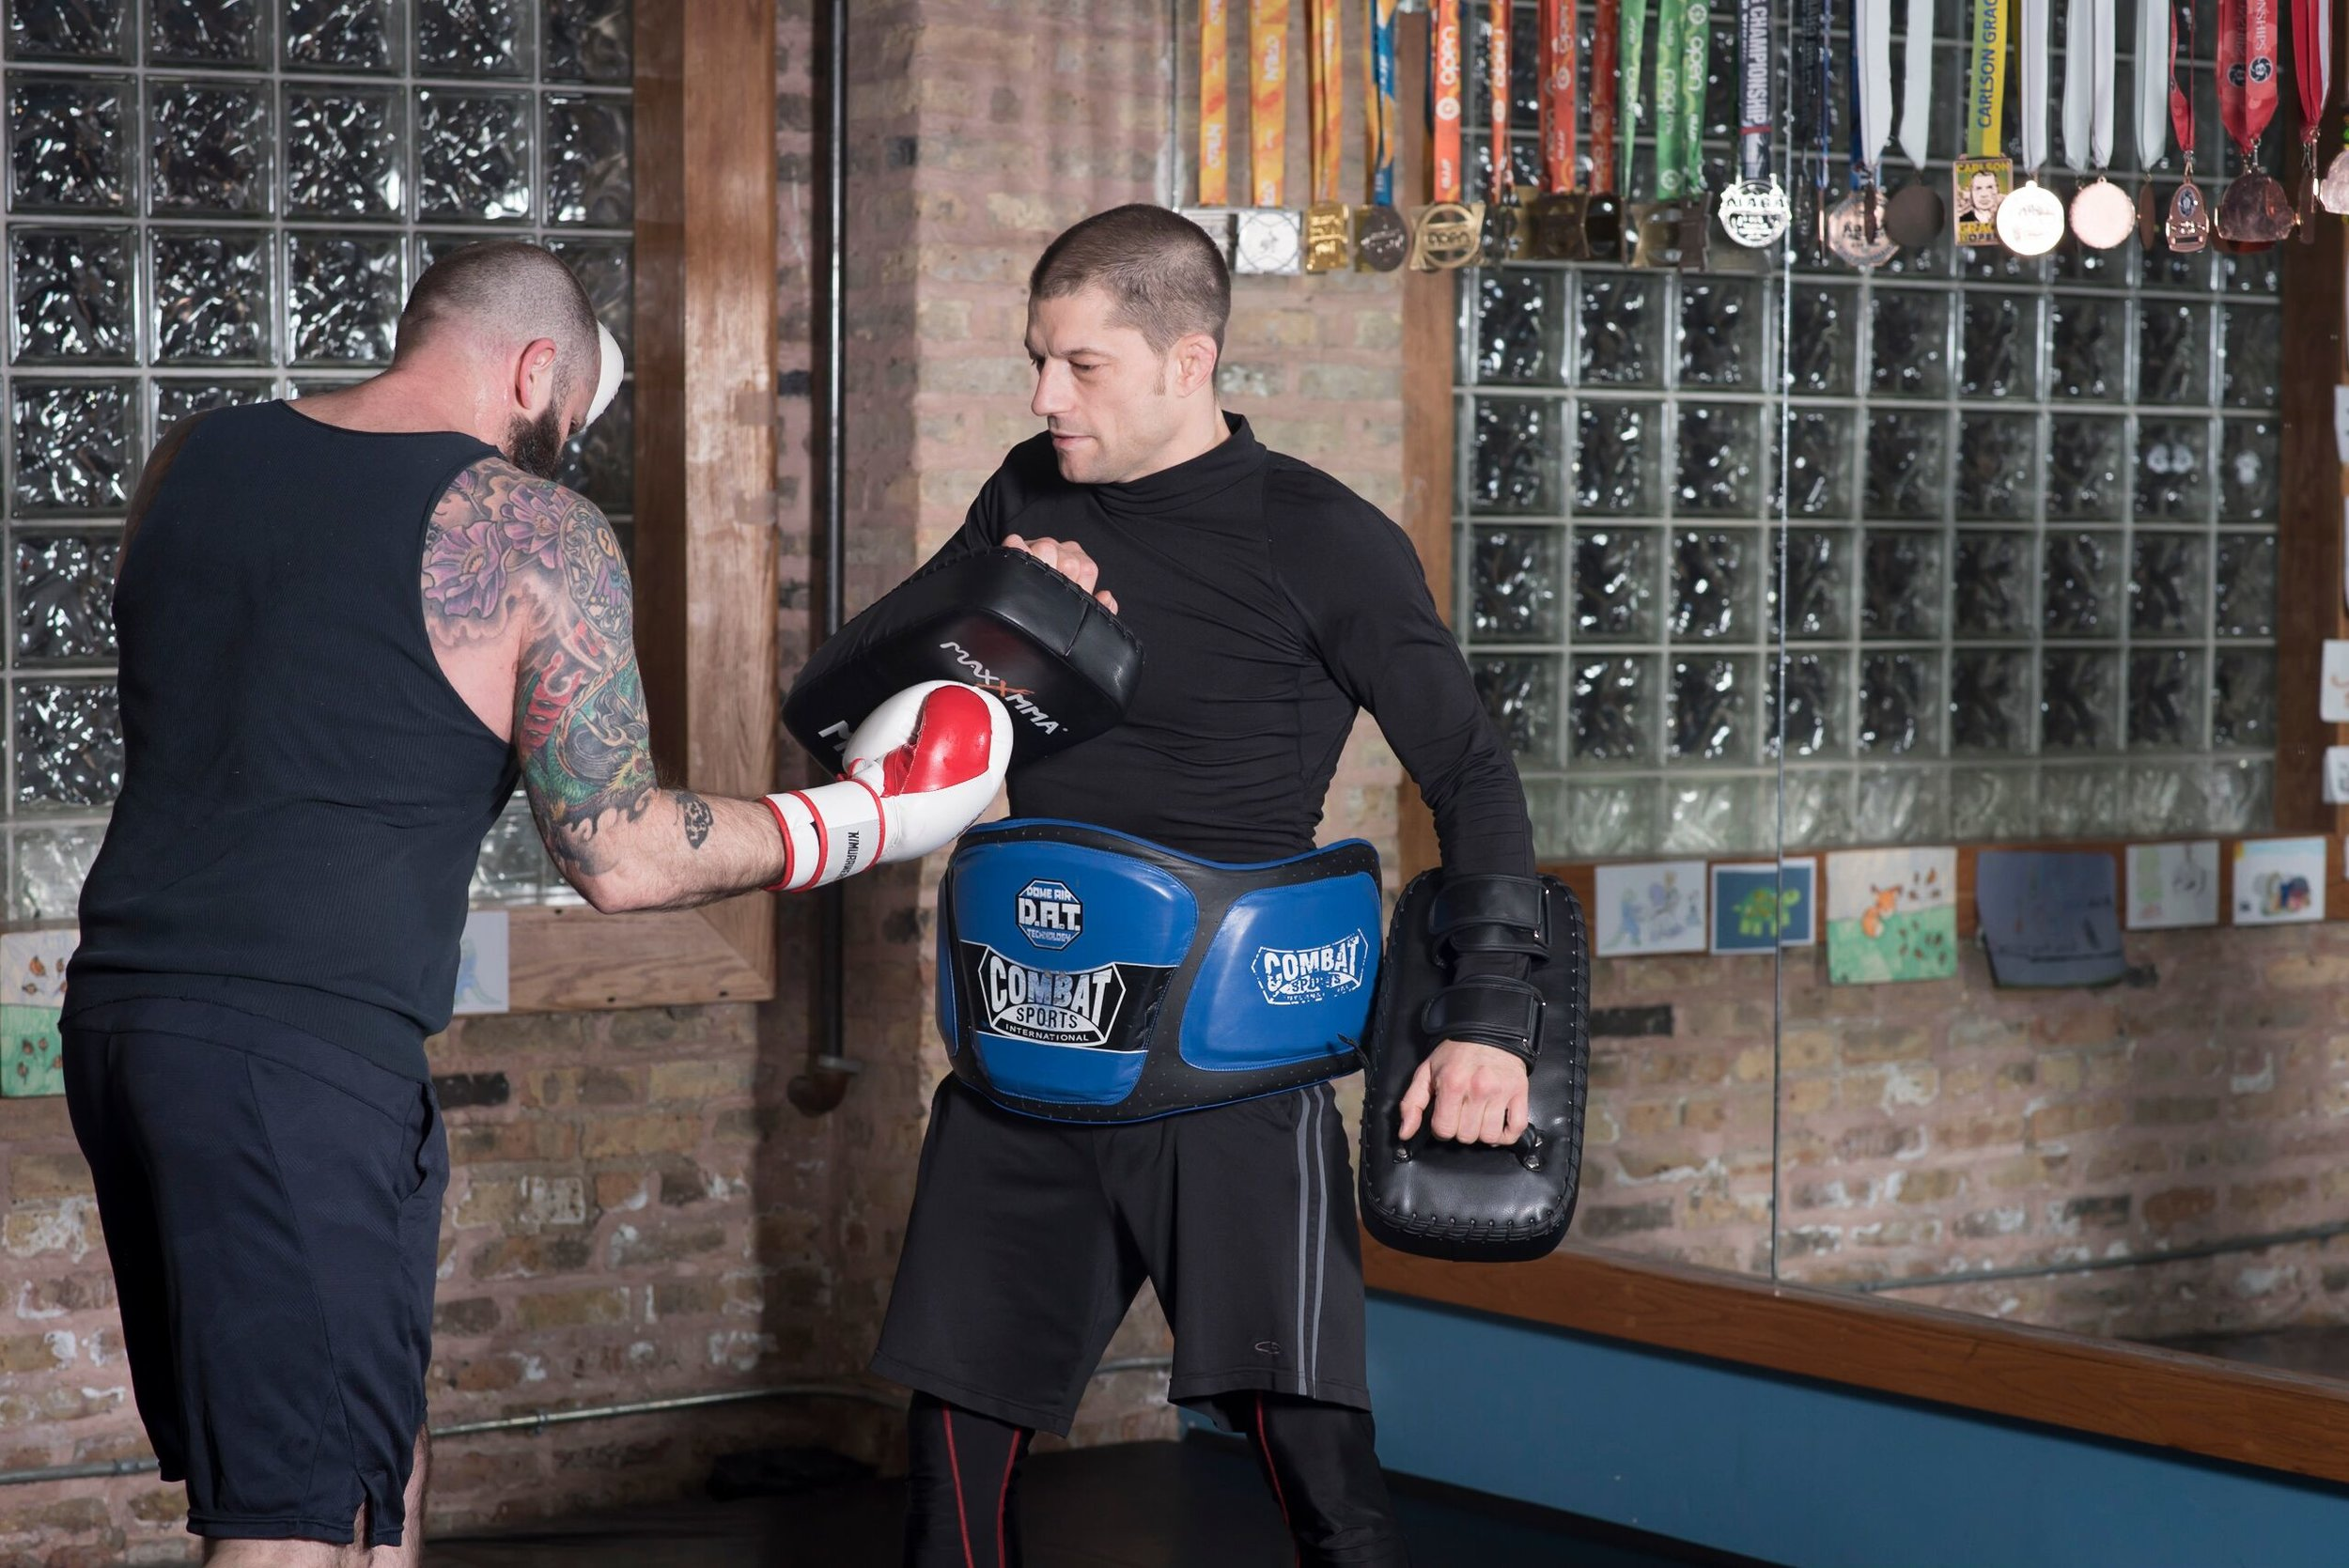 Experience - Extensive training and certifications to help you reach your Martial Arts and fitness goals.